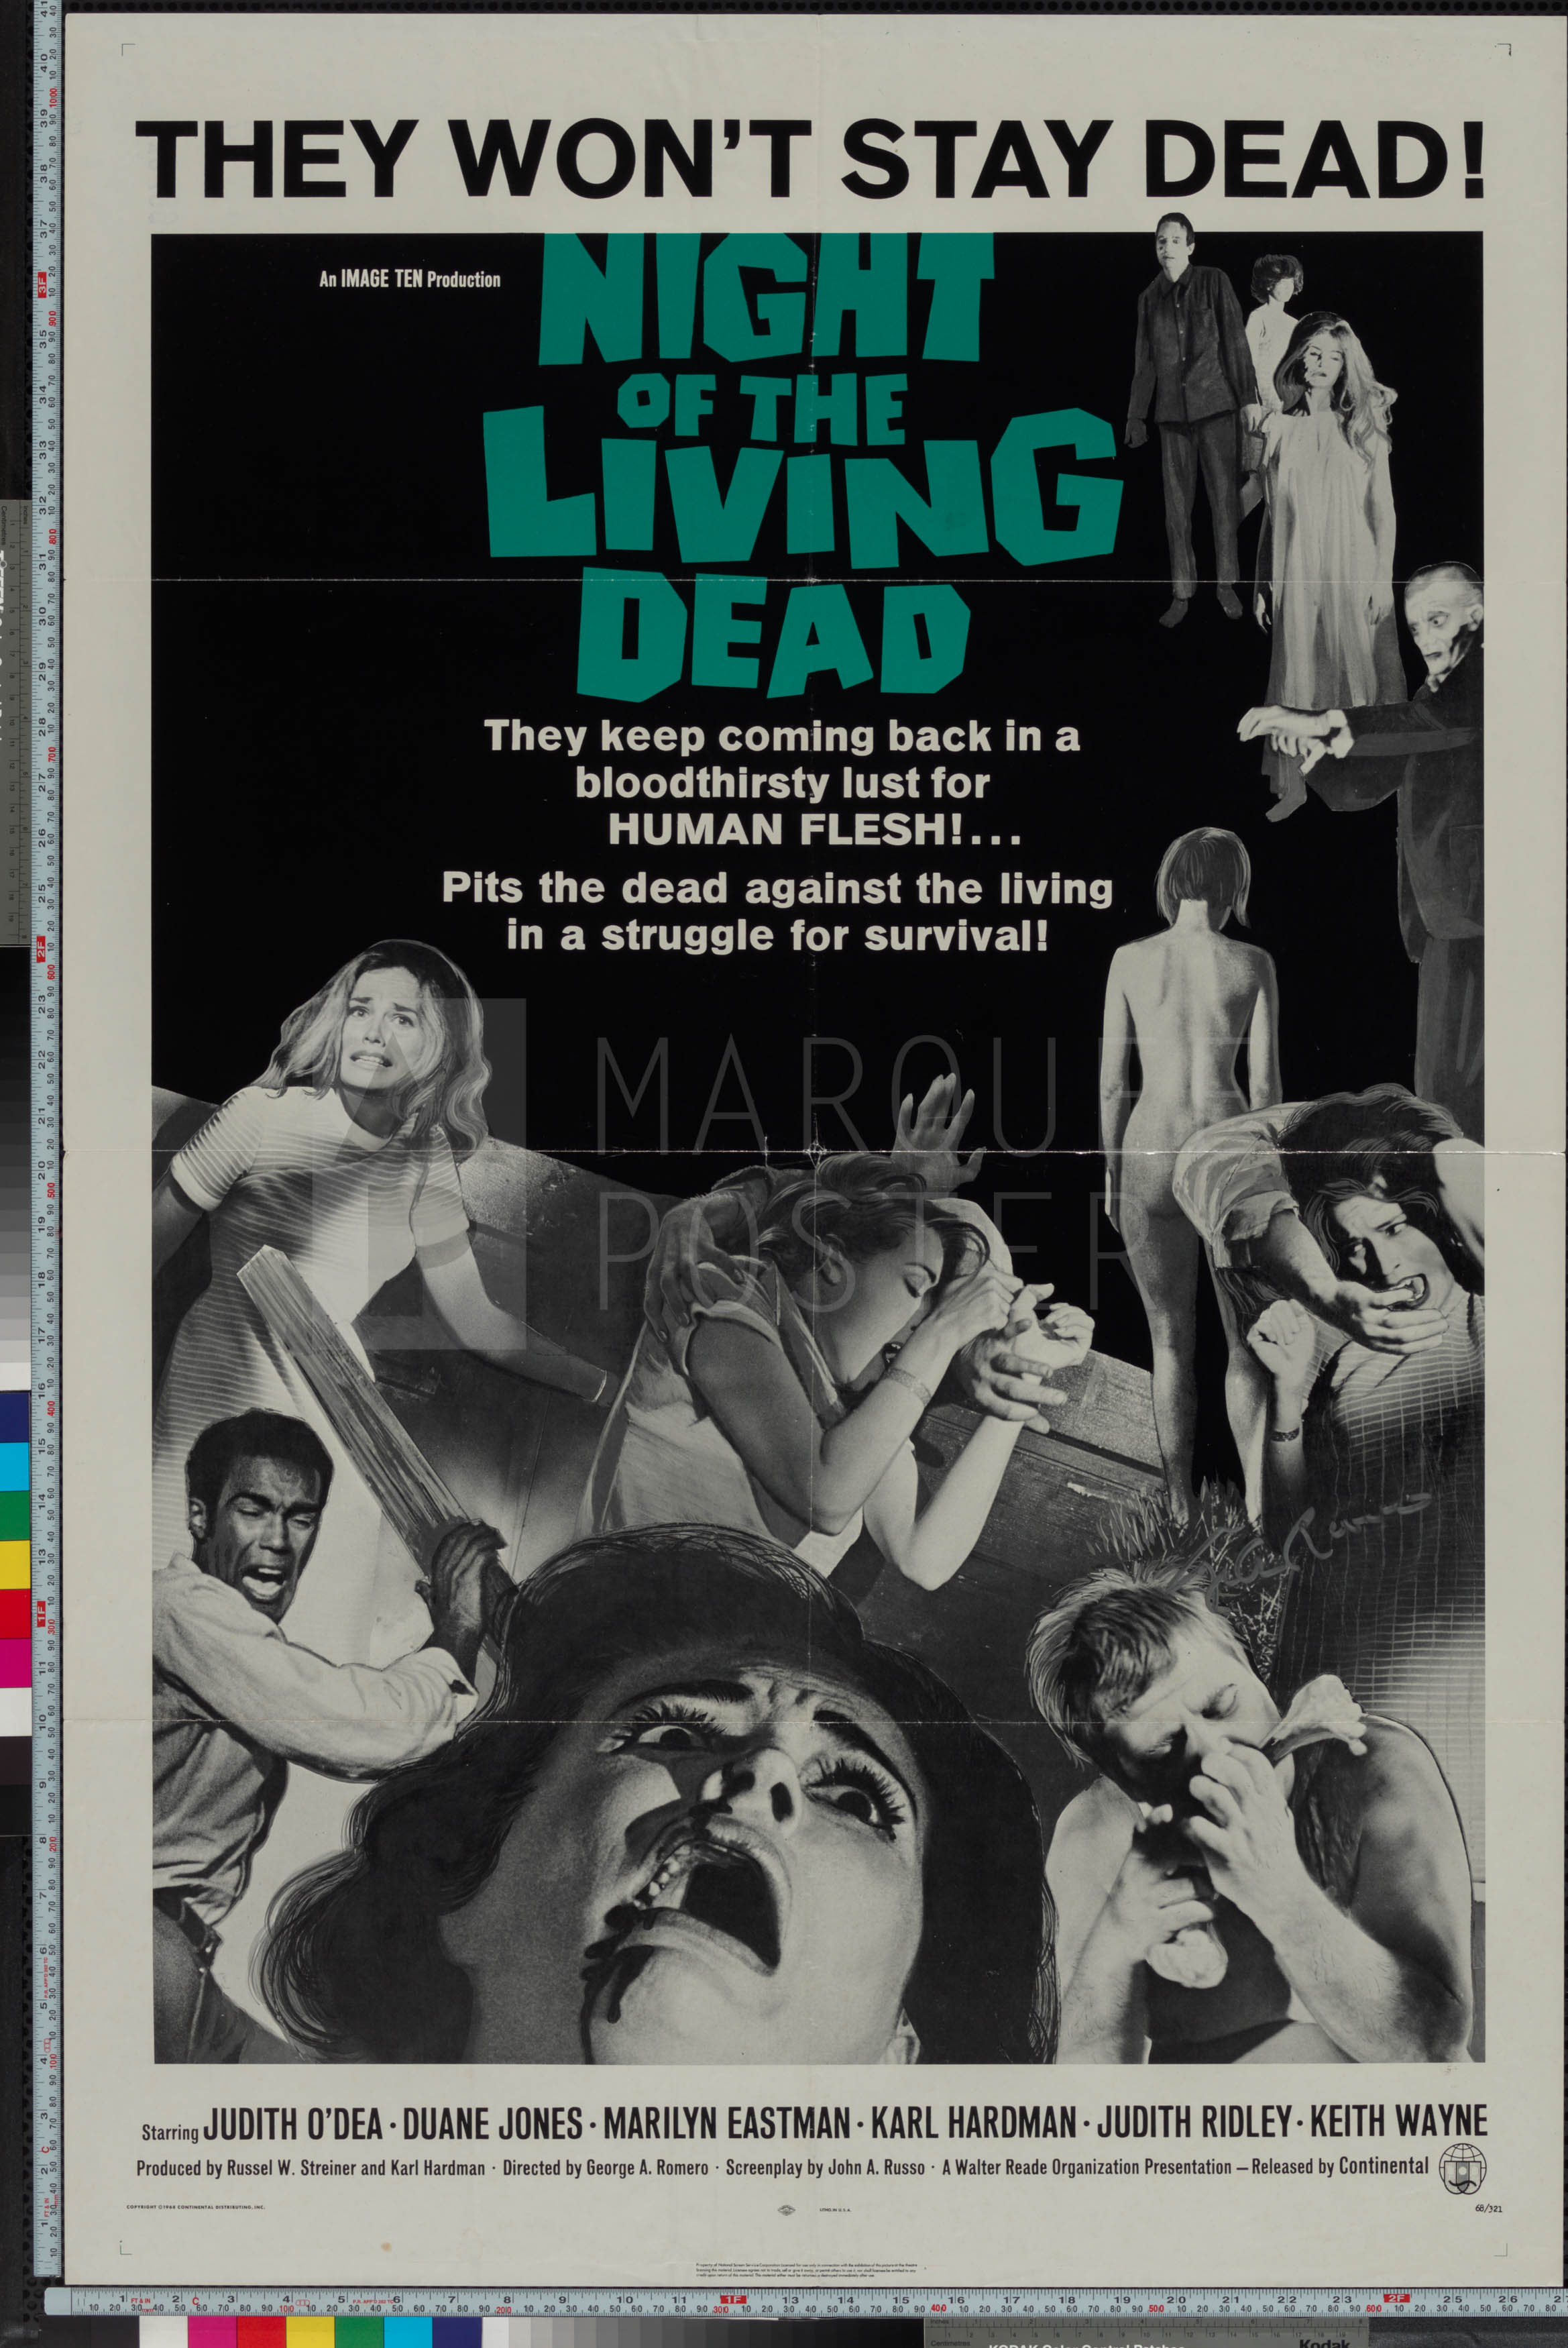 9-night-of-the-living-dead-dark-green-title-style-us-1-sheet-1968-02